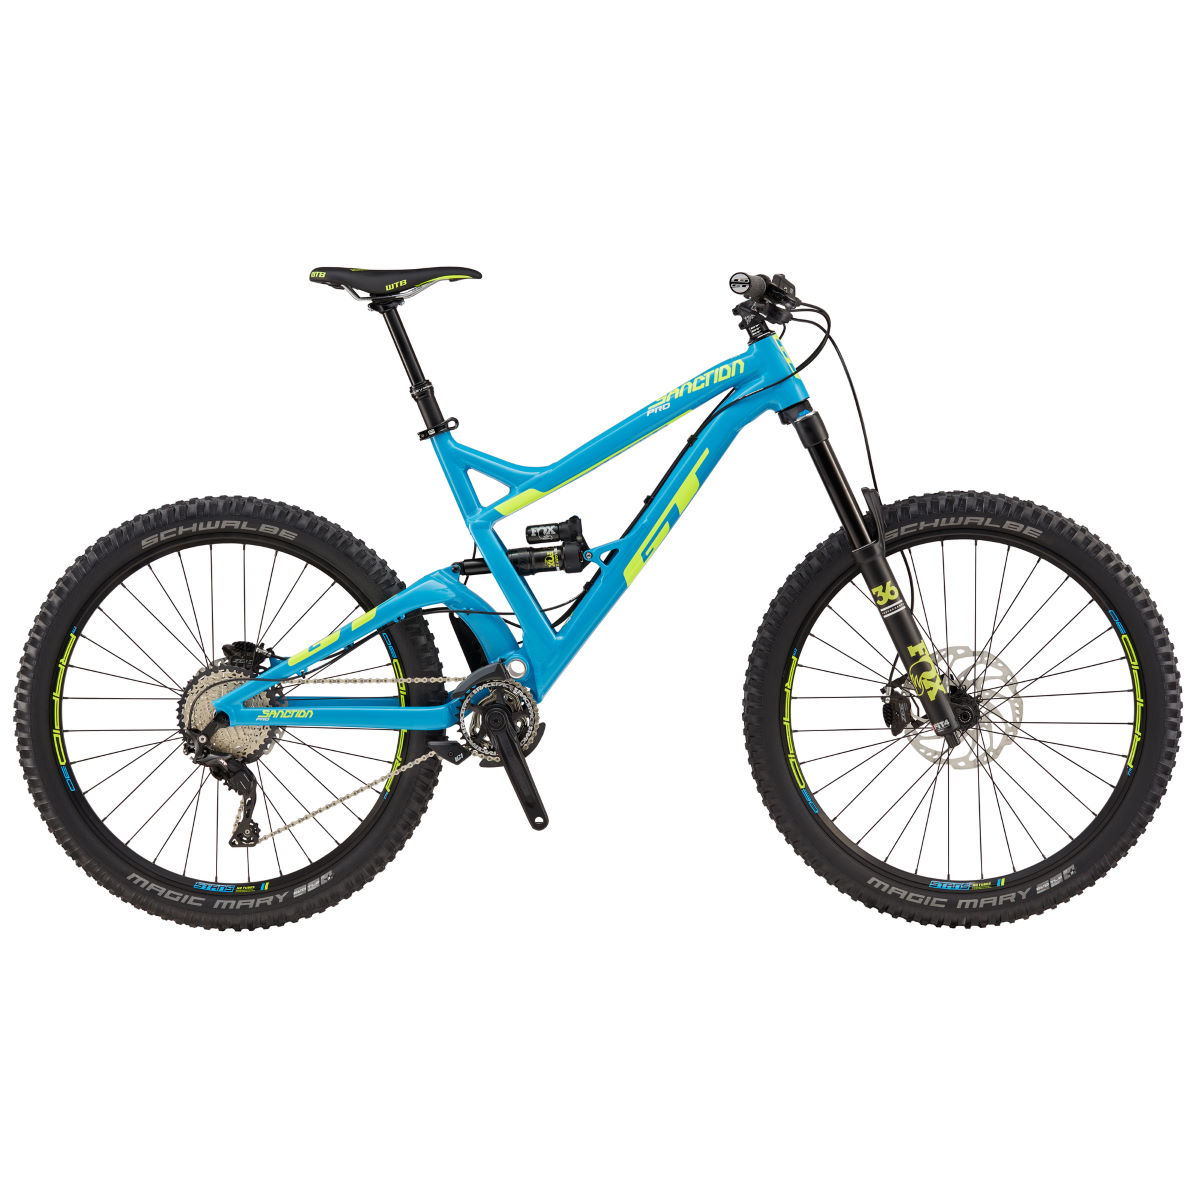 GT Sanction Pro (2017) Mountain Bike - XL Stock Bike Cyan VTT tout suspendu